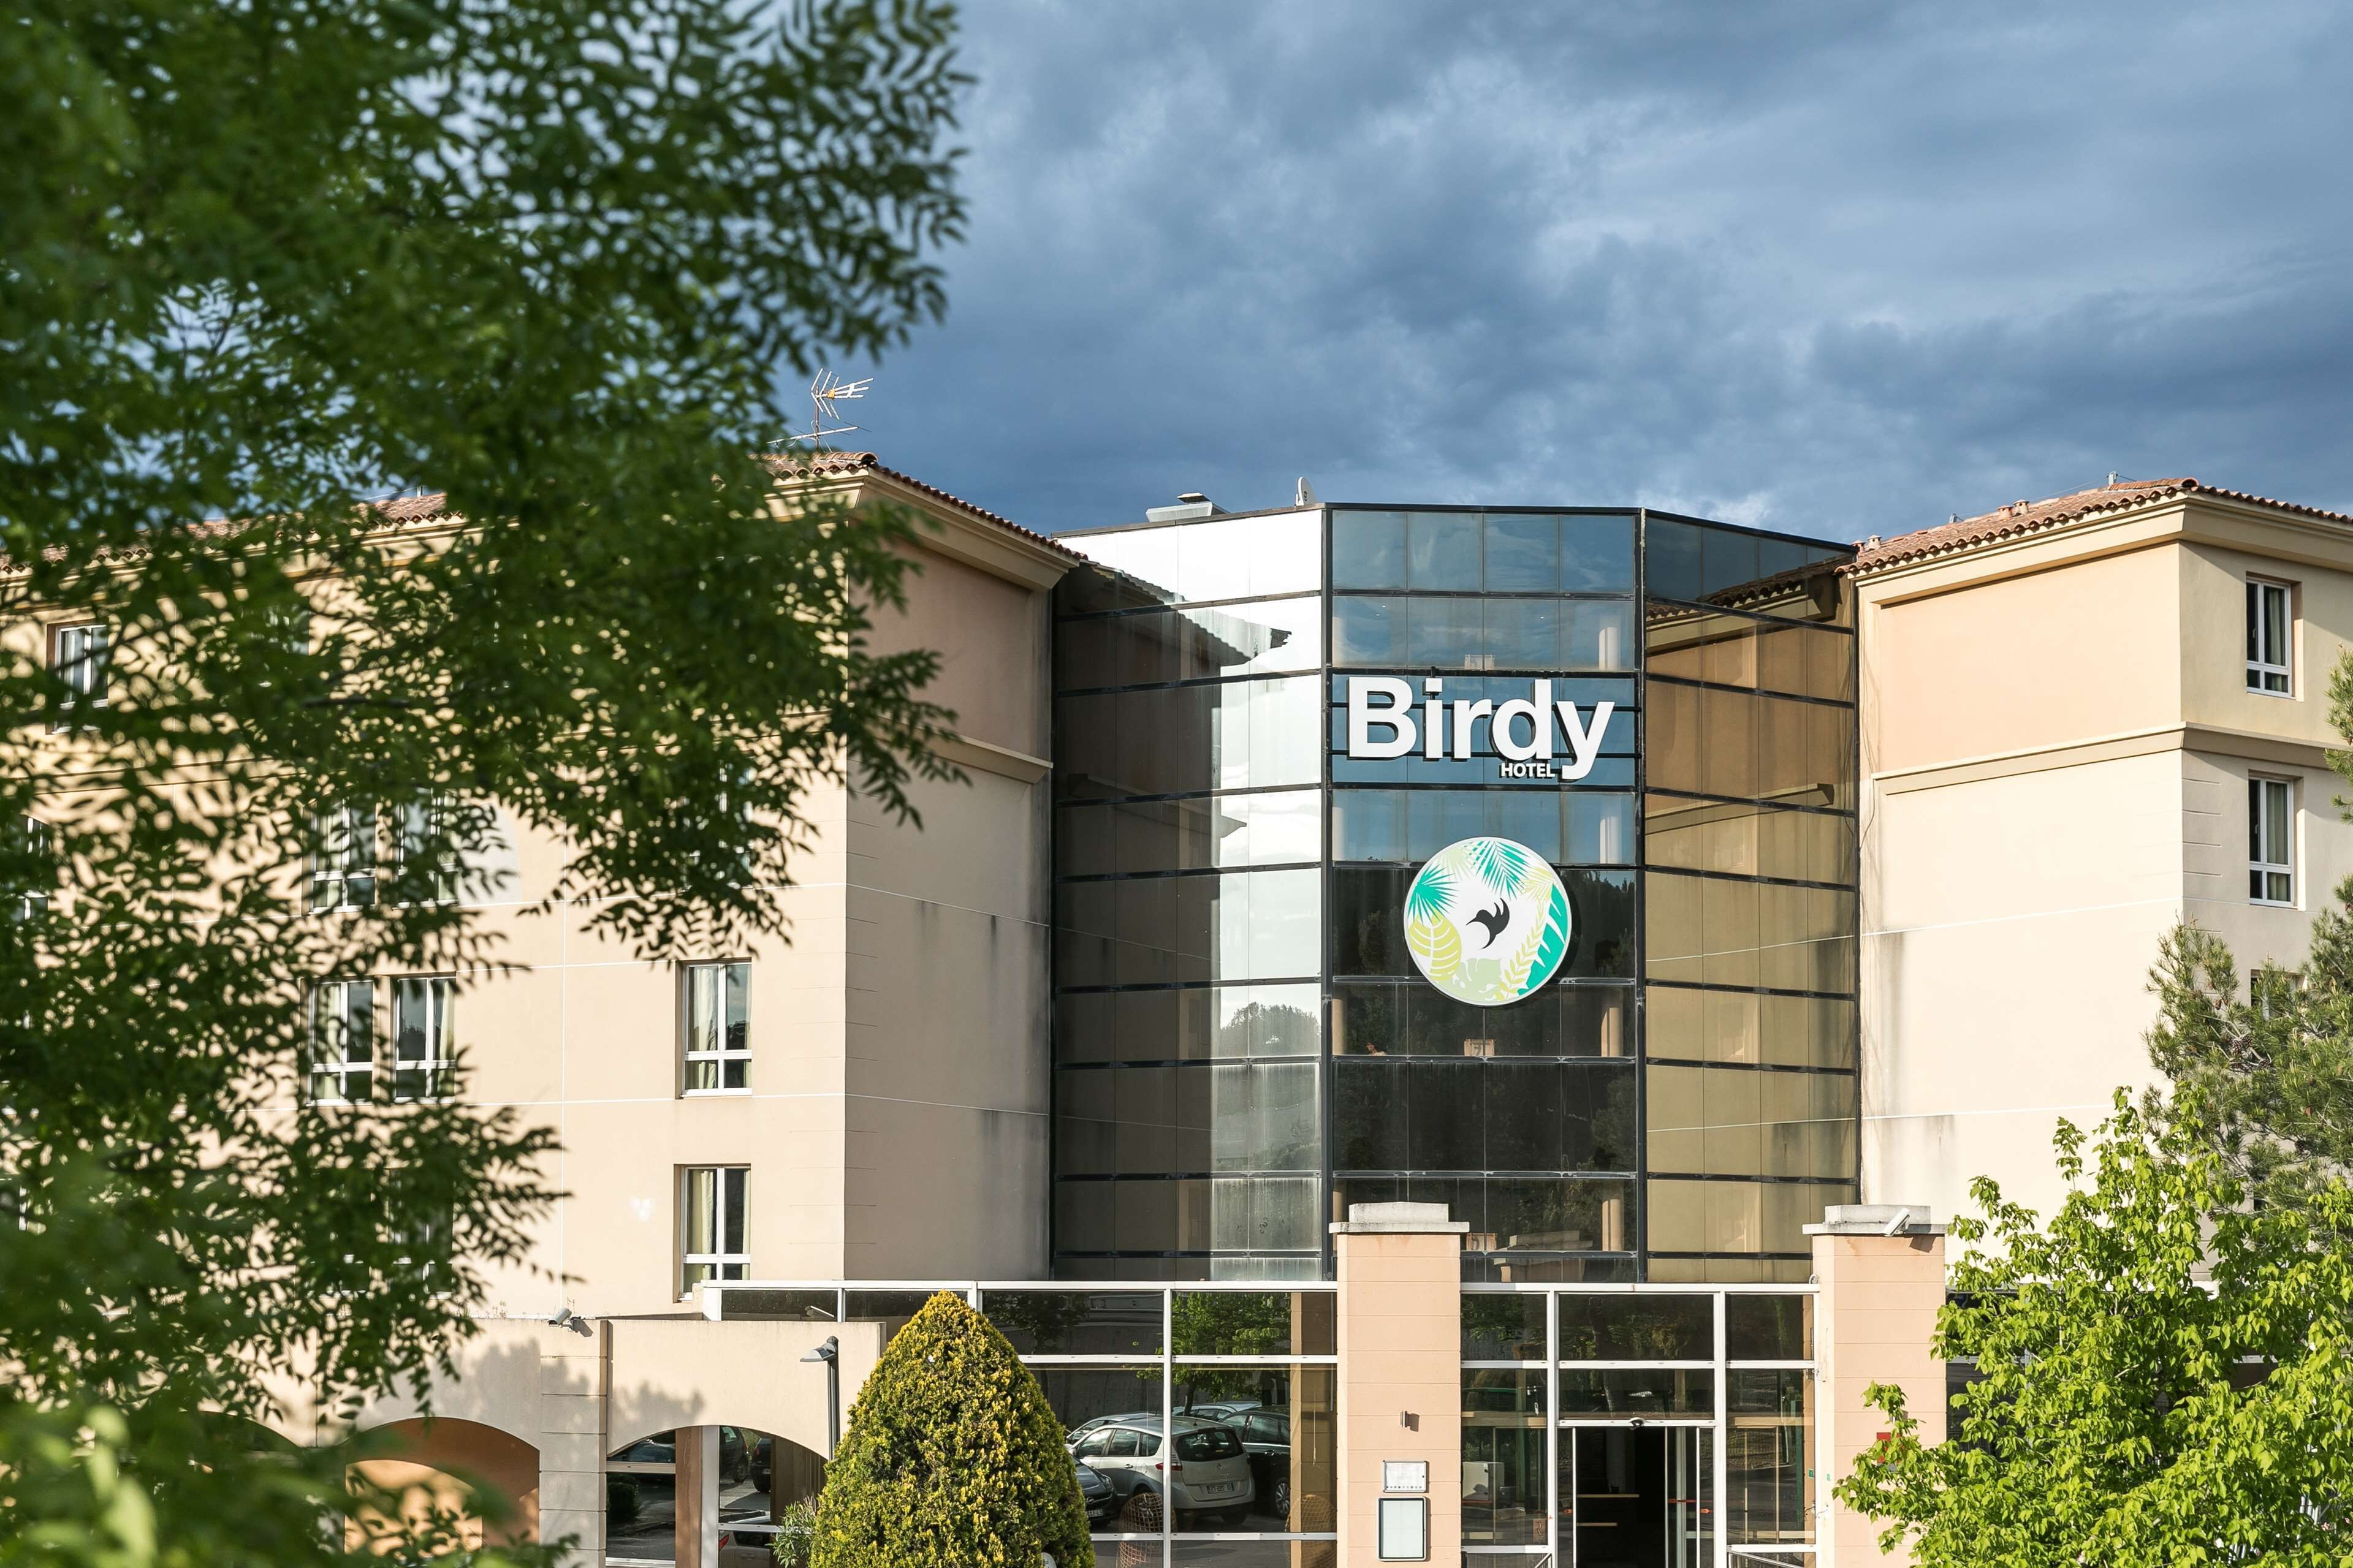 Birdy Hotel By Happyculture